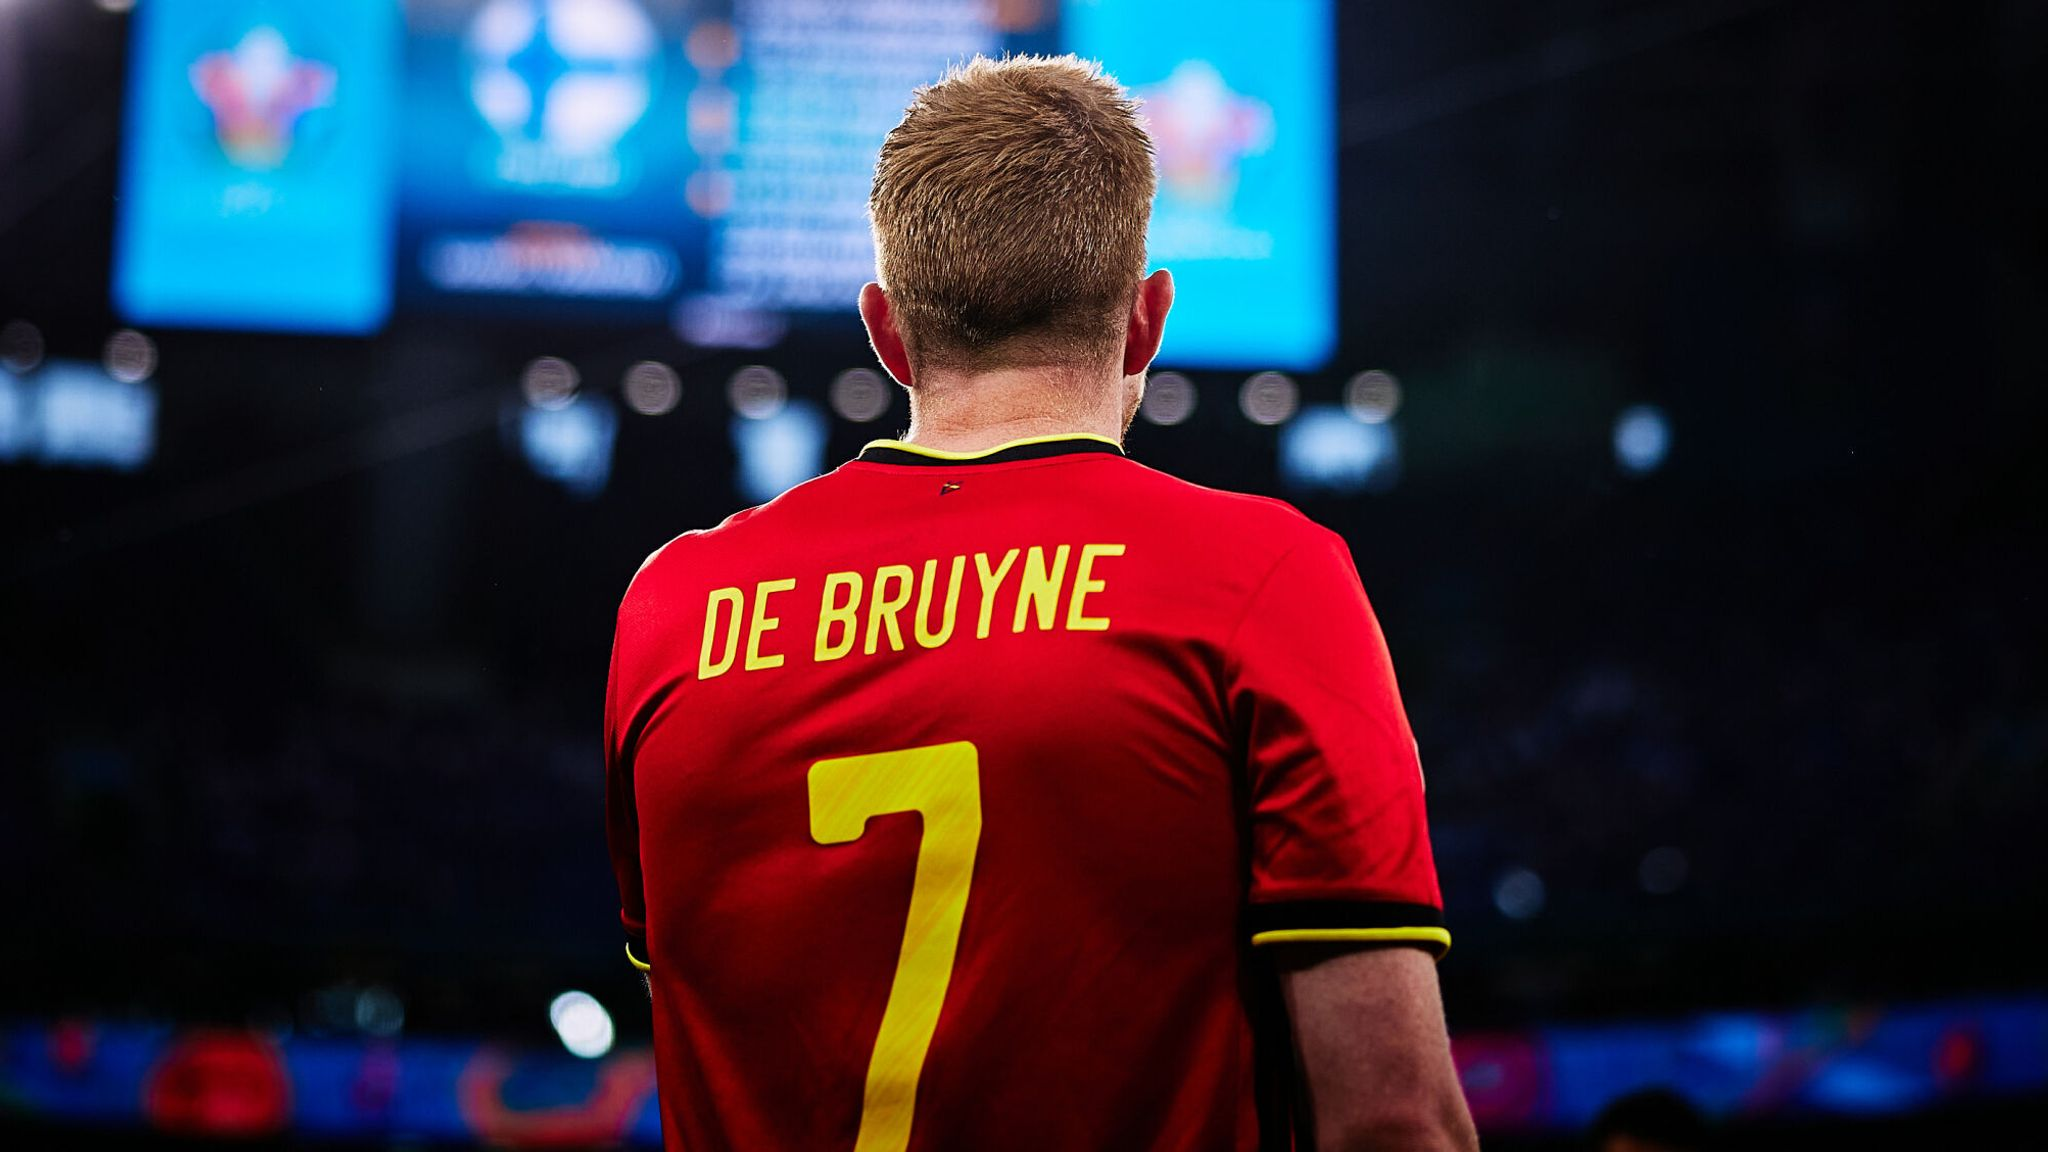 Kevin De Bruyne is a master at scanning: Geir Jordet on the science behind  the importance of vision and perception in football | Football News | Sky  Sports